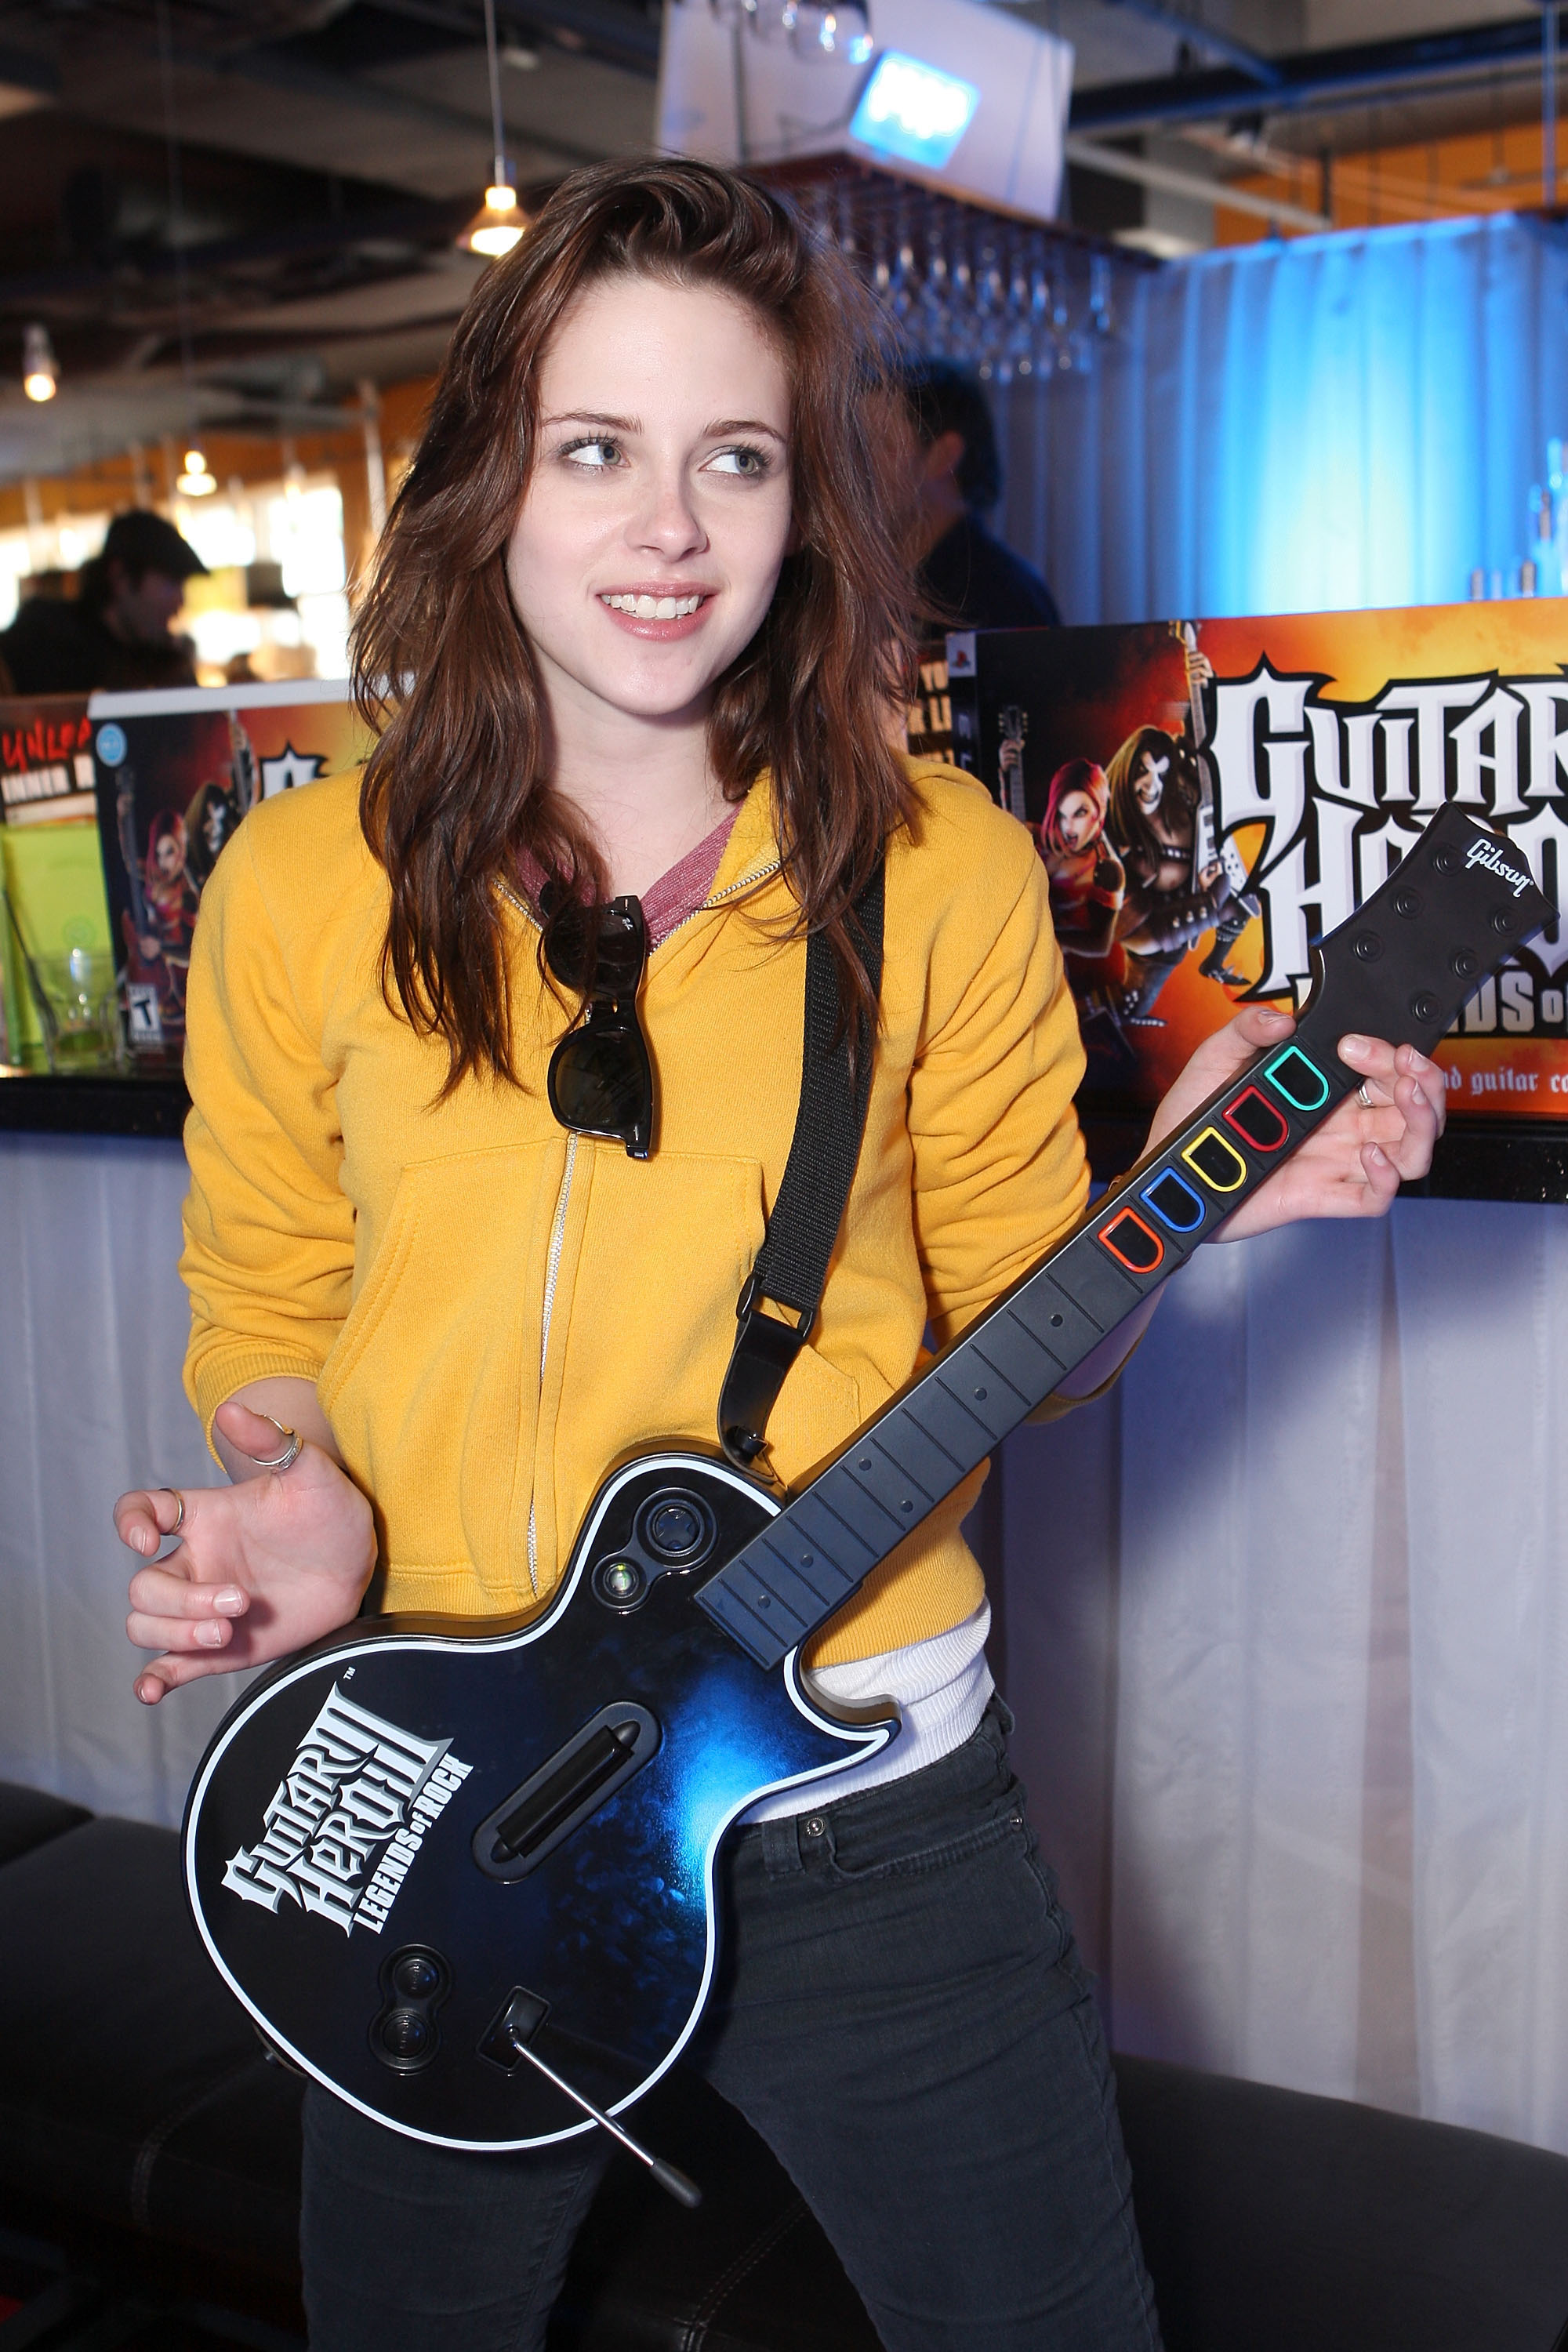 Kristen Stewart played Guitar Hero at a Fred Segal event in Park City, UT, in January 2008 during the Sundance Film Festival.